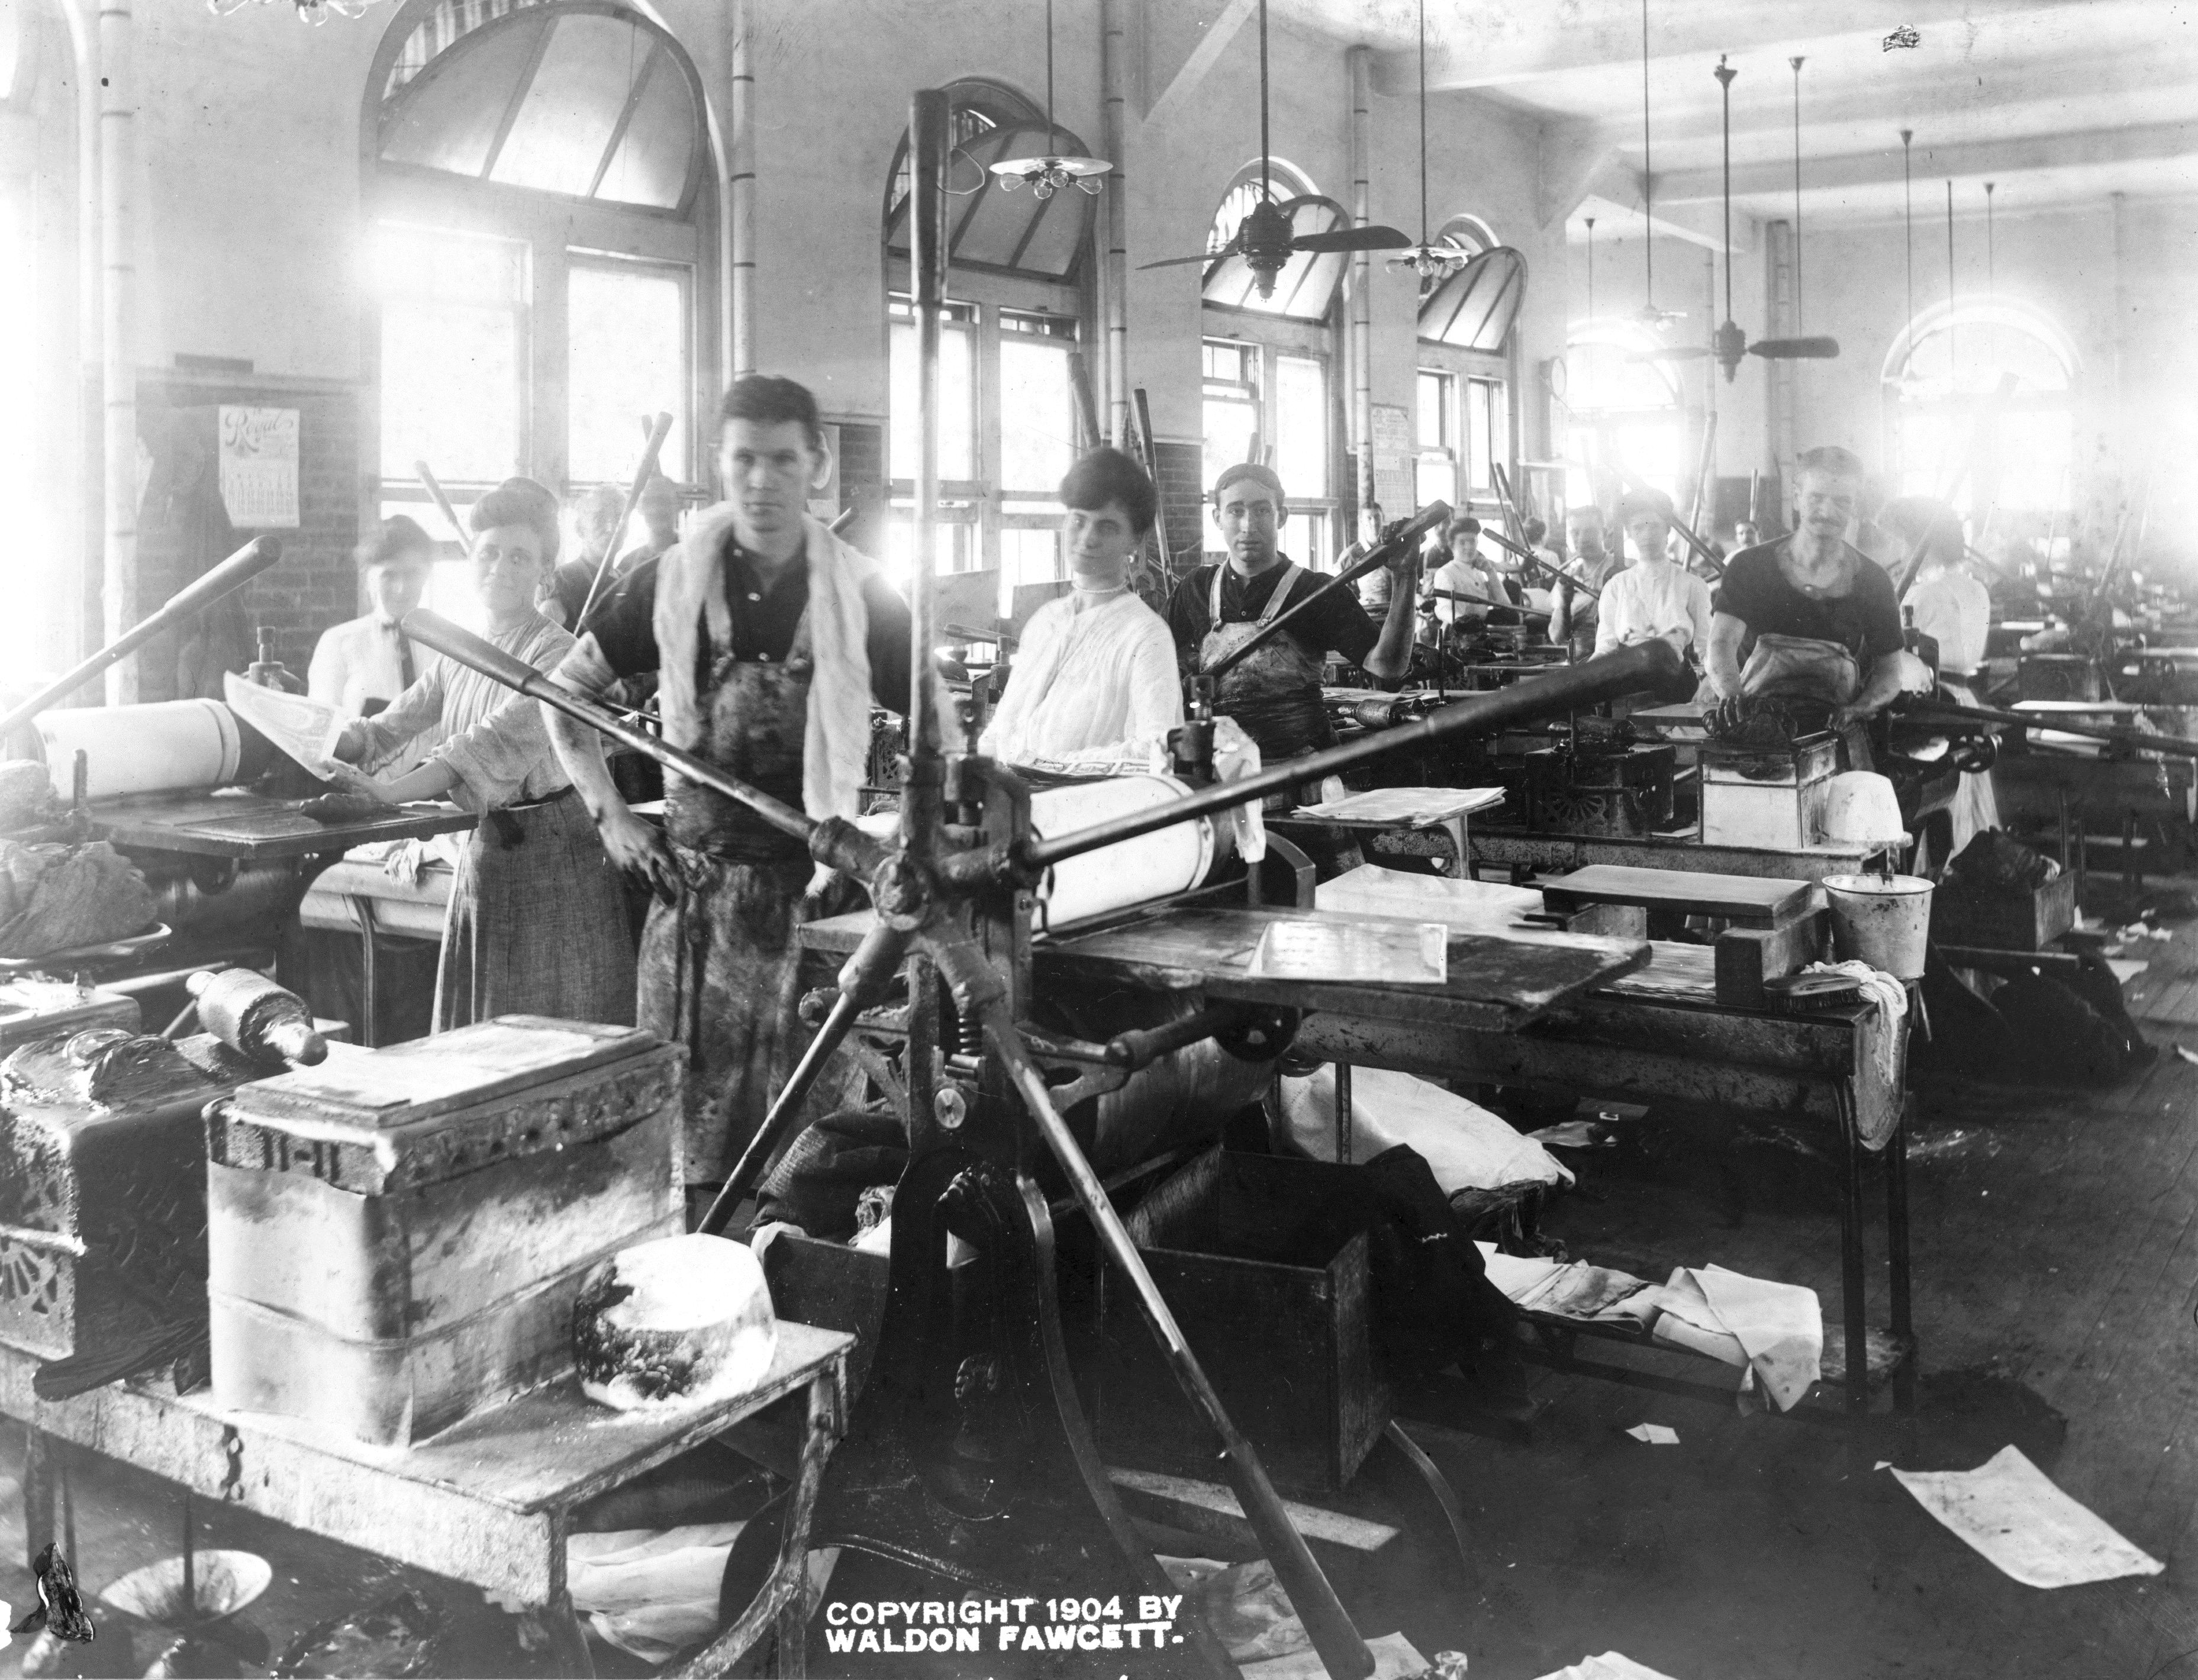 Employees at Printing Presses, Waldon Fawcett, c. 1904.